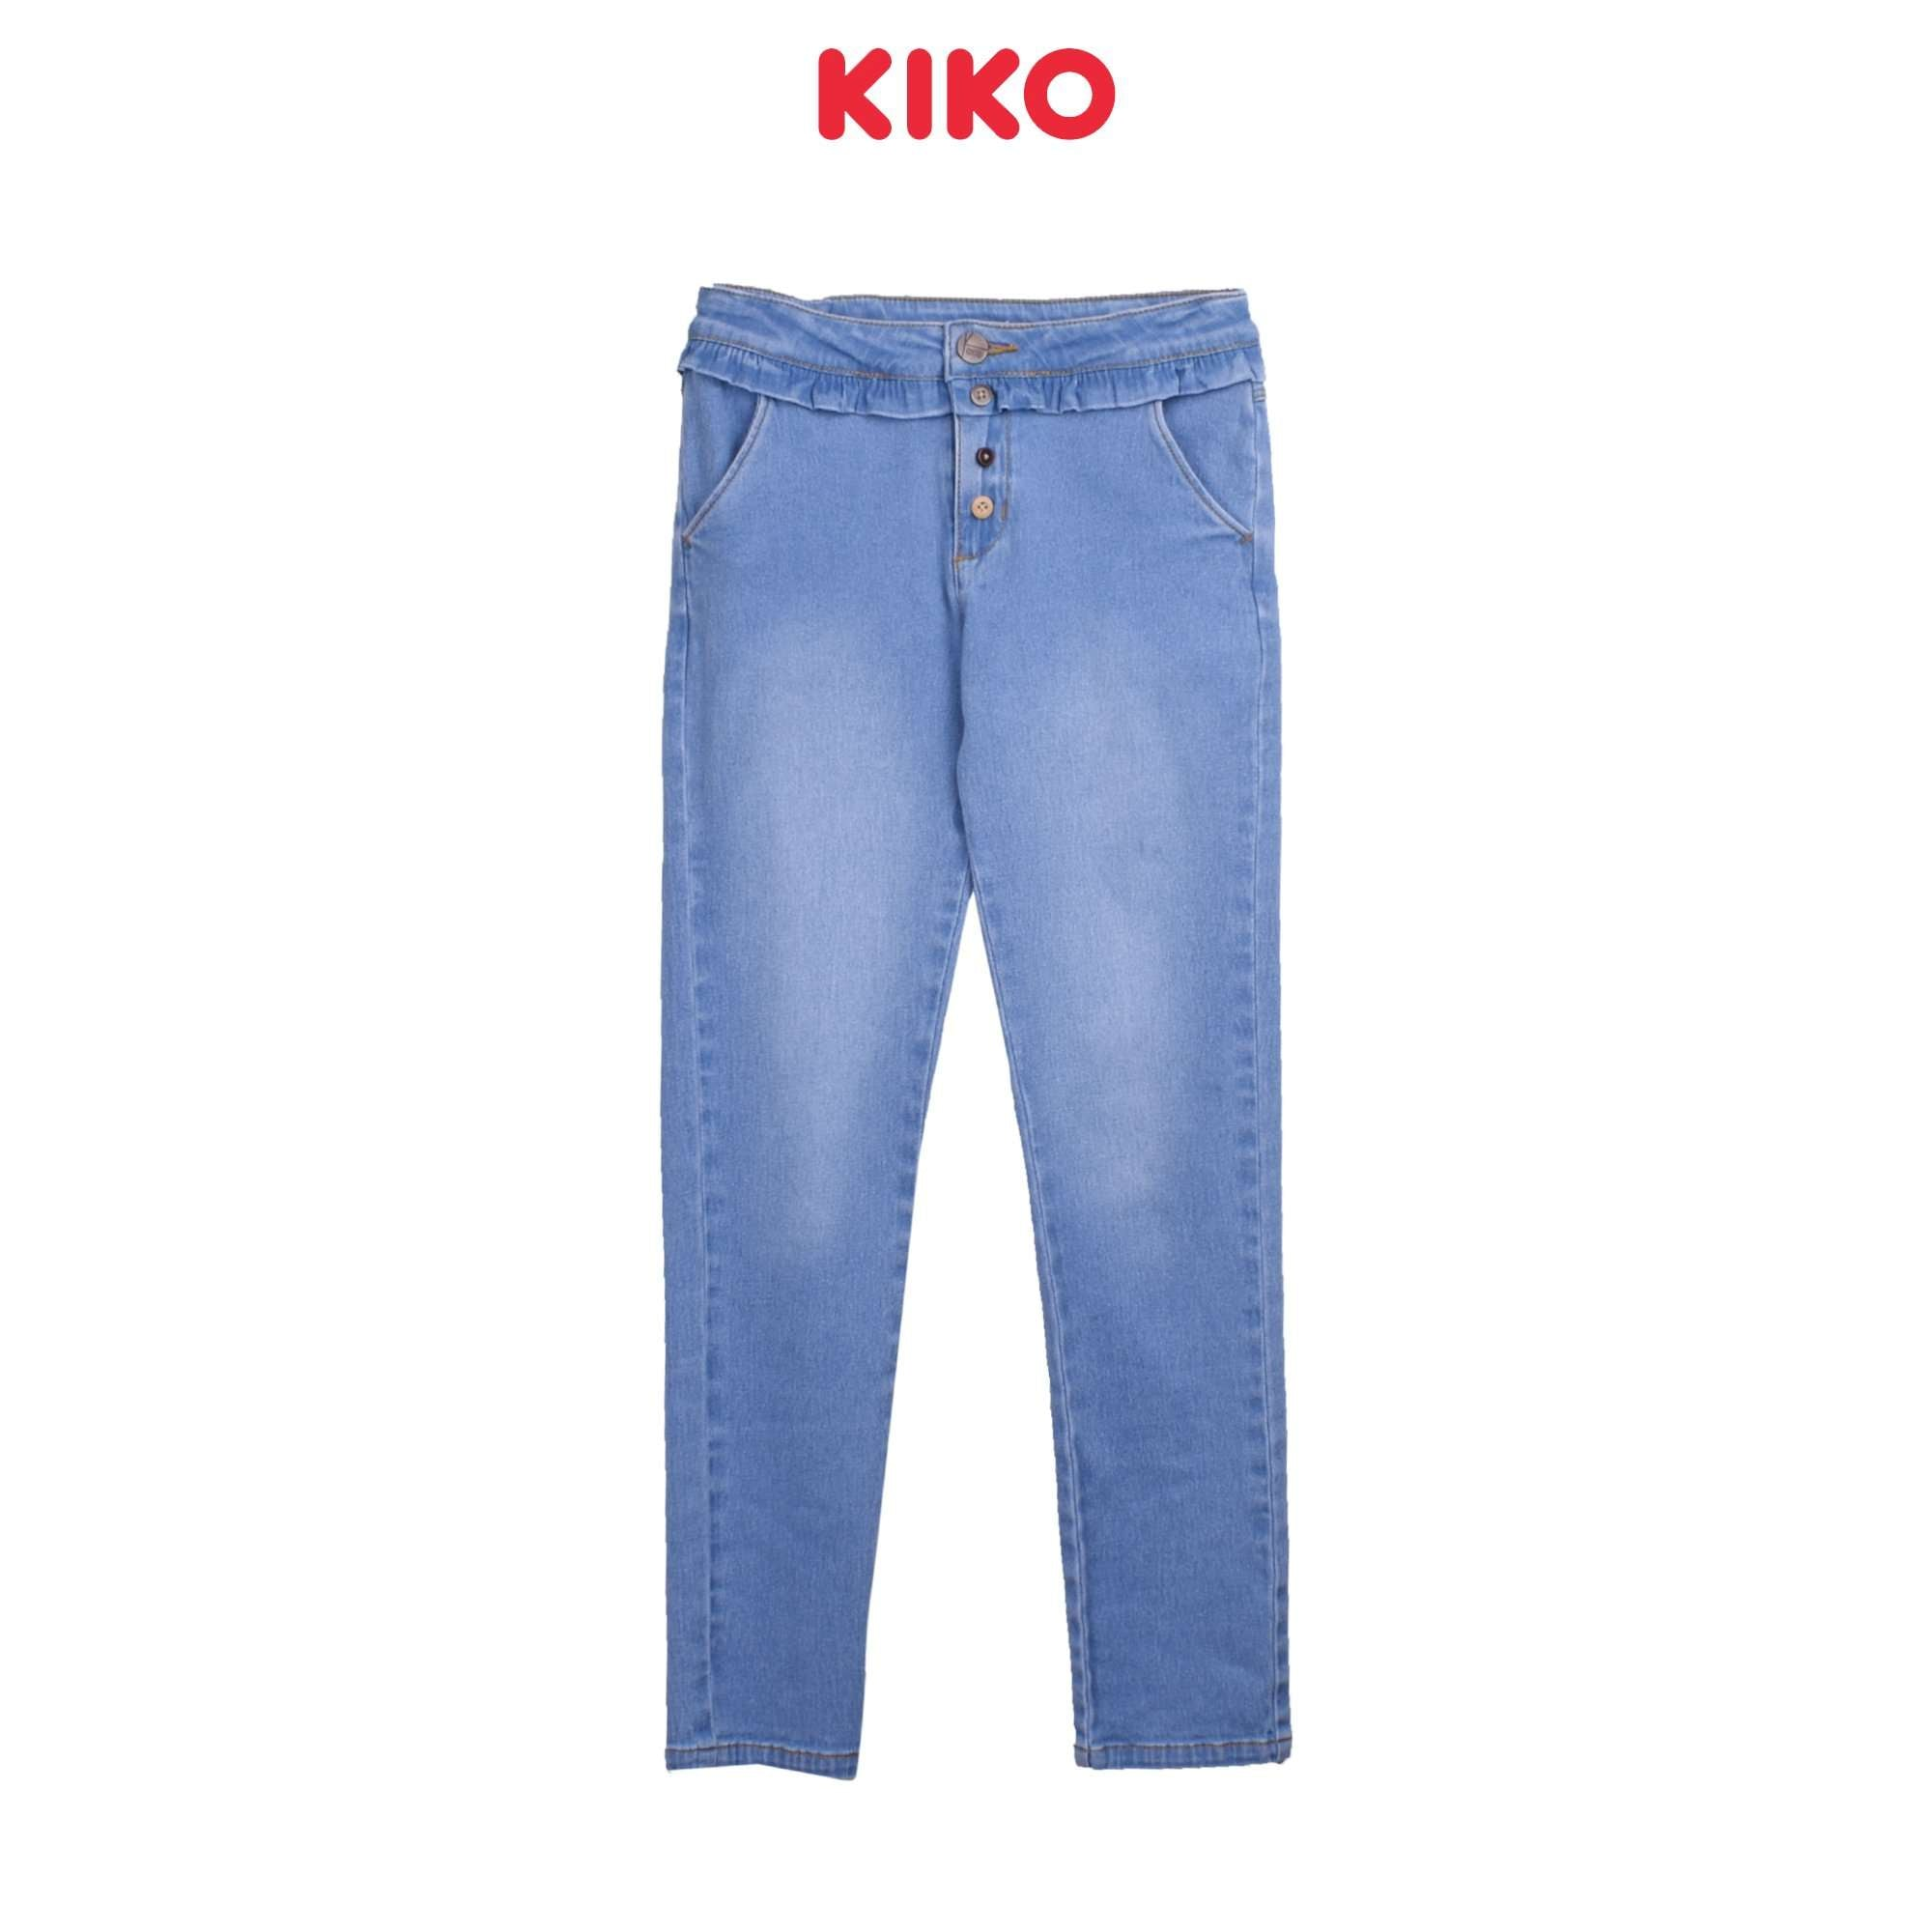 KIKO Girl Jeans Regular Fit K925001-2106-L5 : Buy KIKO online at CMG.MY